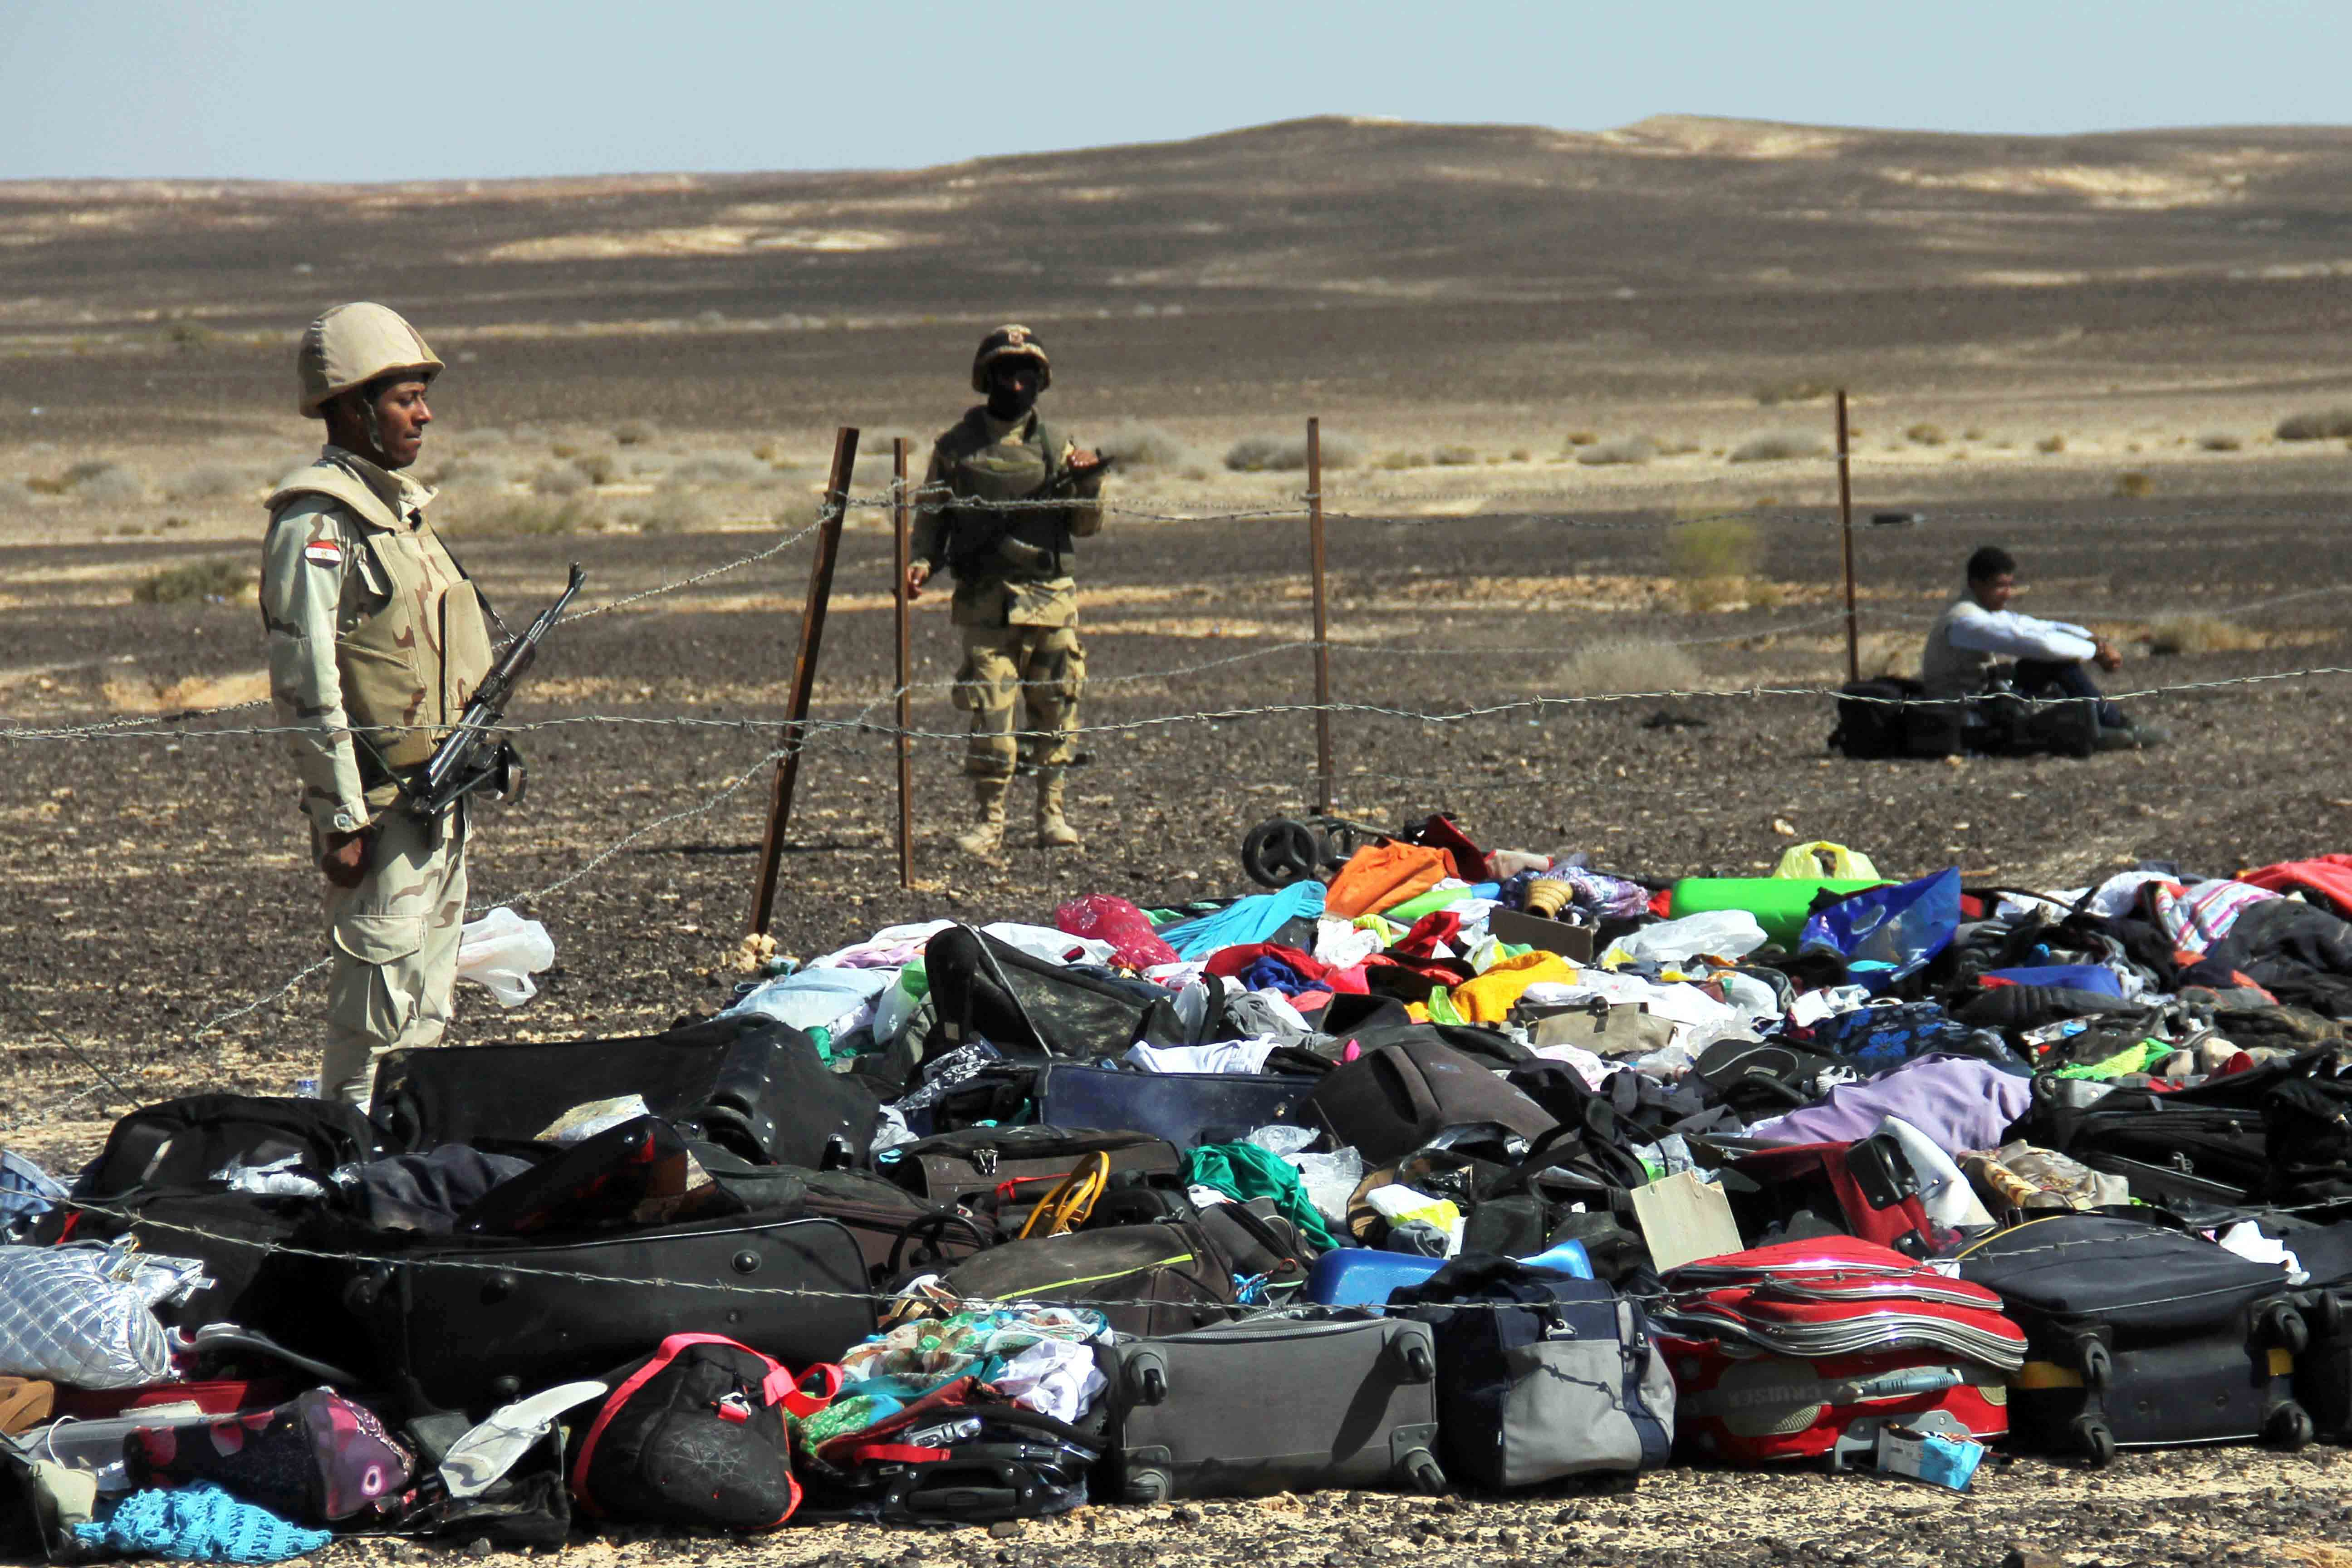 Egyptian Army soldiers stand near luggage and personal effects of passengers a day after a passenger jet bound for St. Petersburg, Russia crashed in Hassana, Egypt, Nov. 1, 2015.